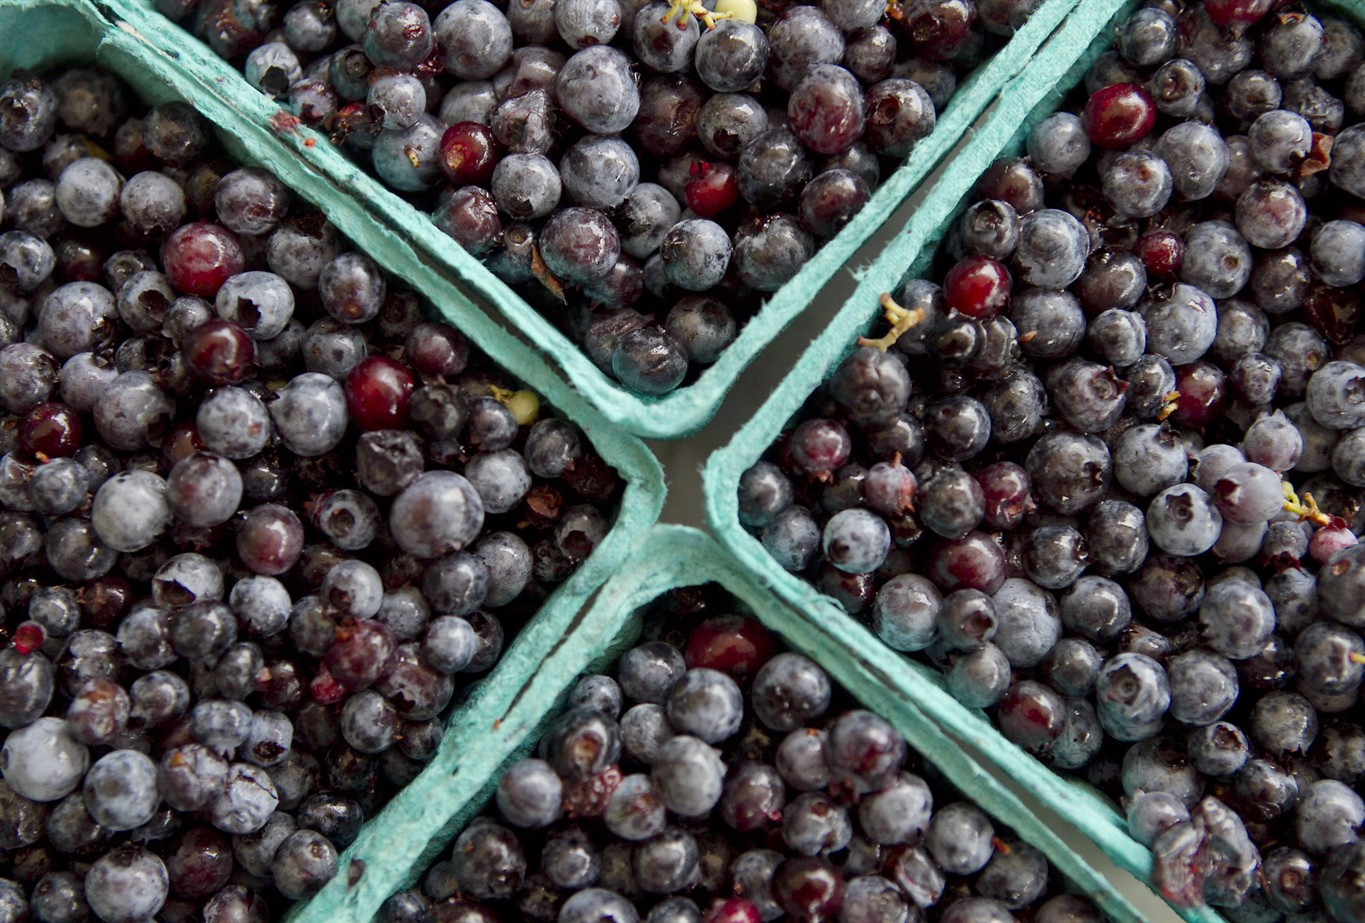 Cartons of wild blueberries are for sale at a roadside stand in Woolwich, Maine, on July 27, 2012. THE CANADIAN PRESS/AP/ Robert F. Bukaty